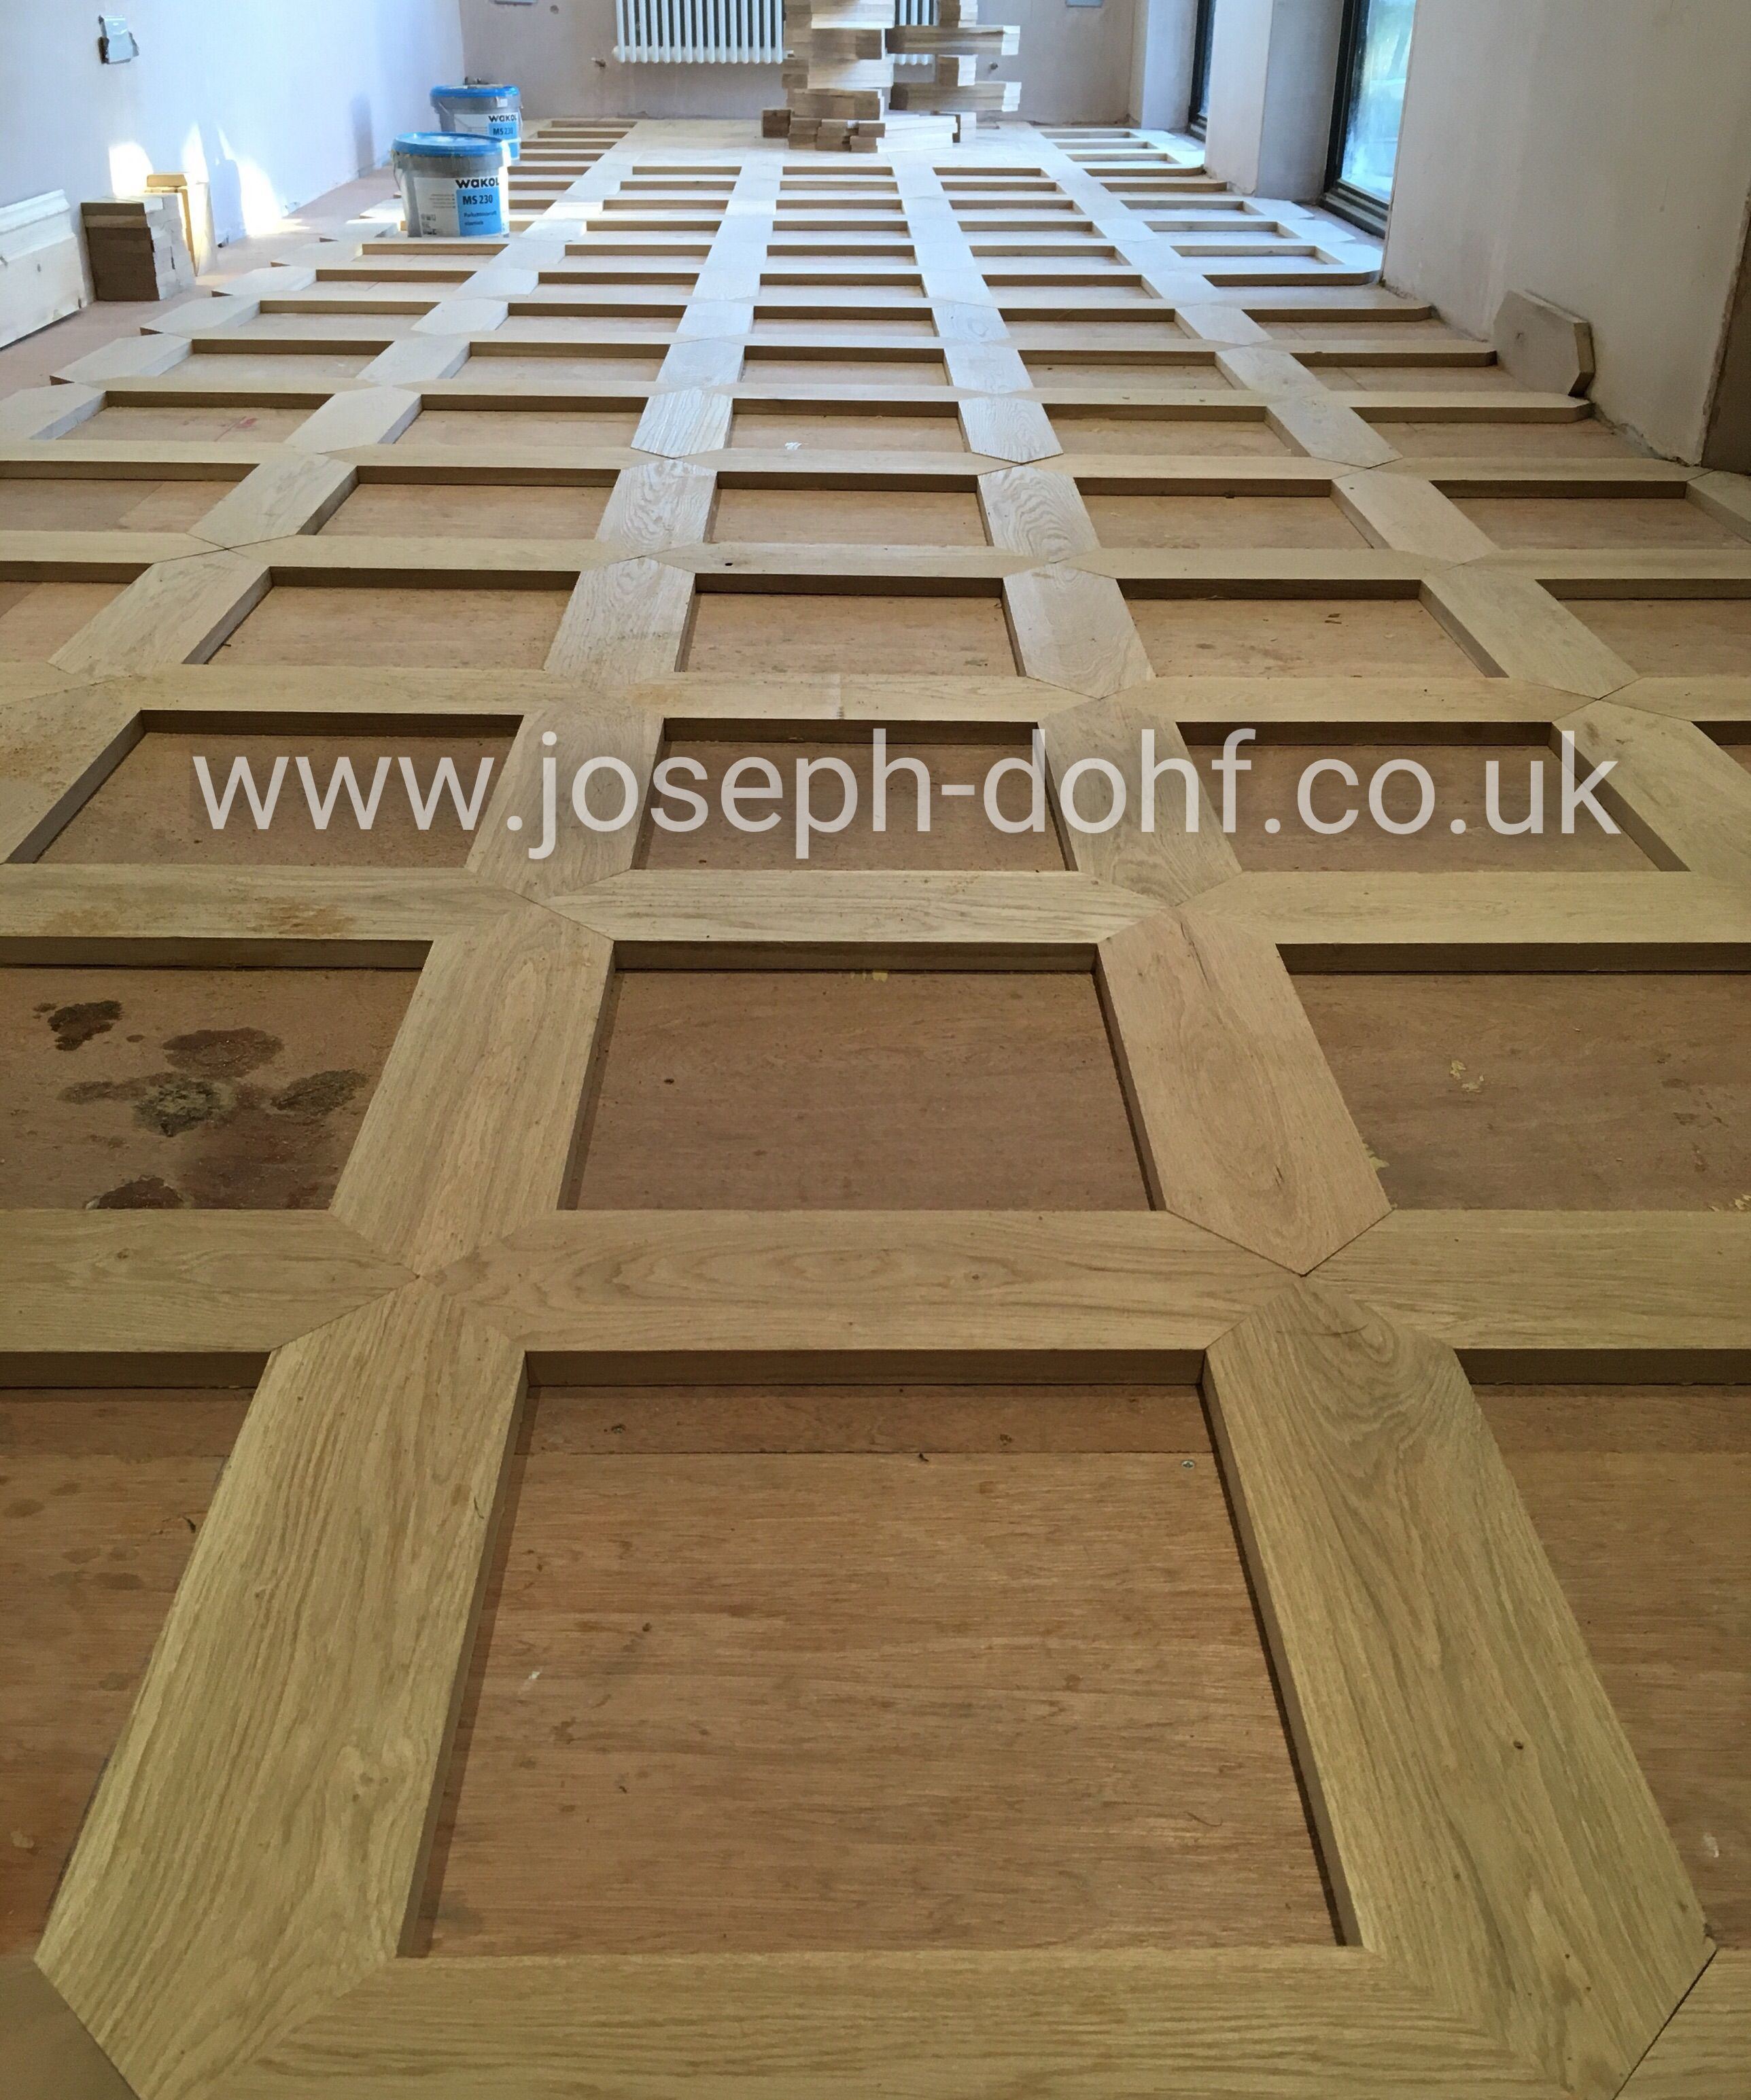 Bespoke Oak Pattern Floor Laying Out The Frame Of